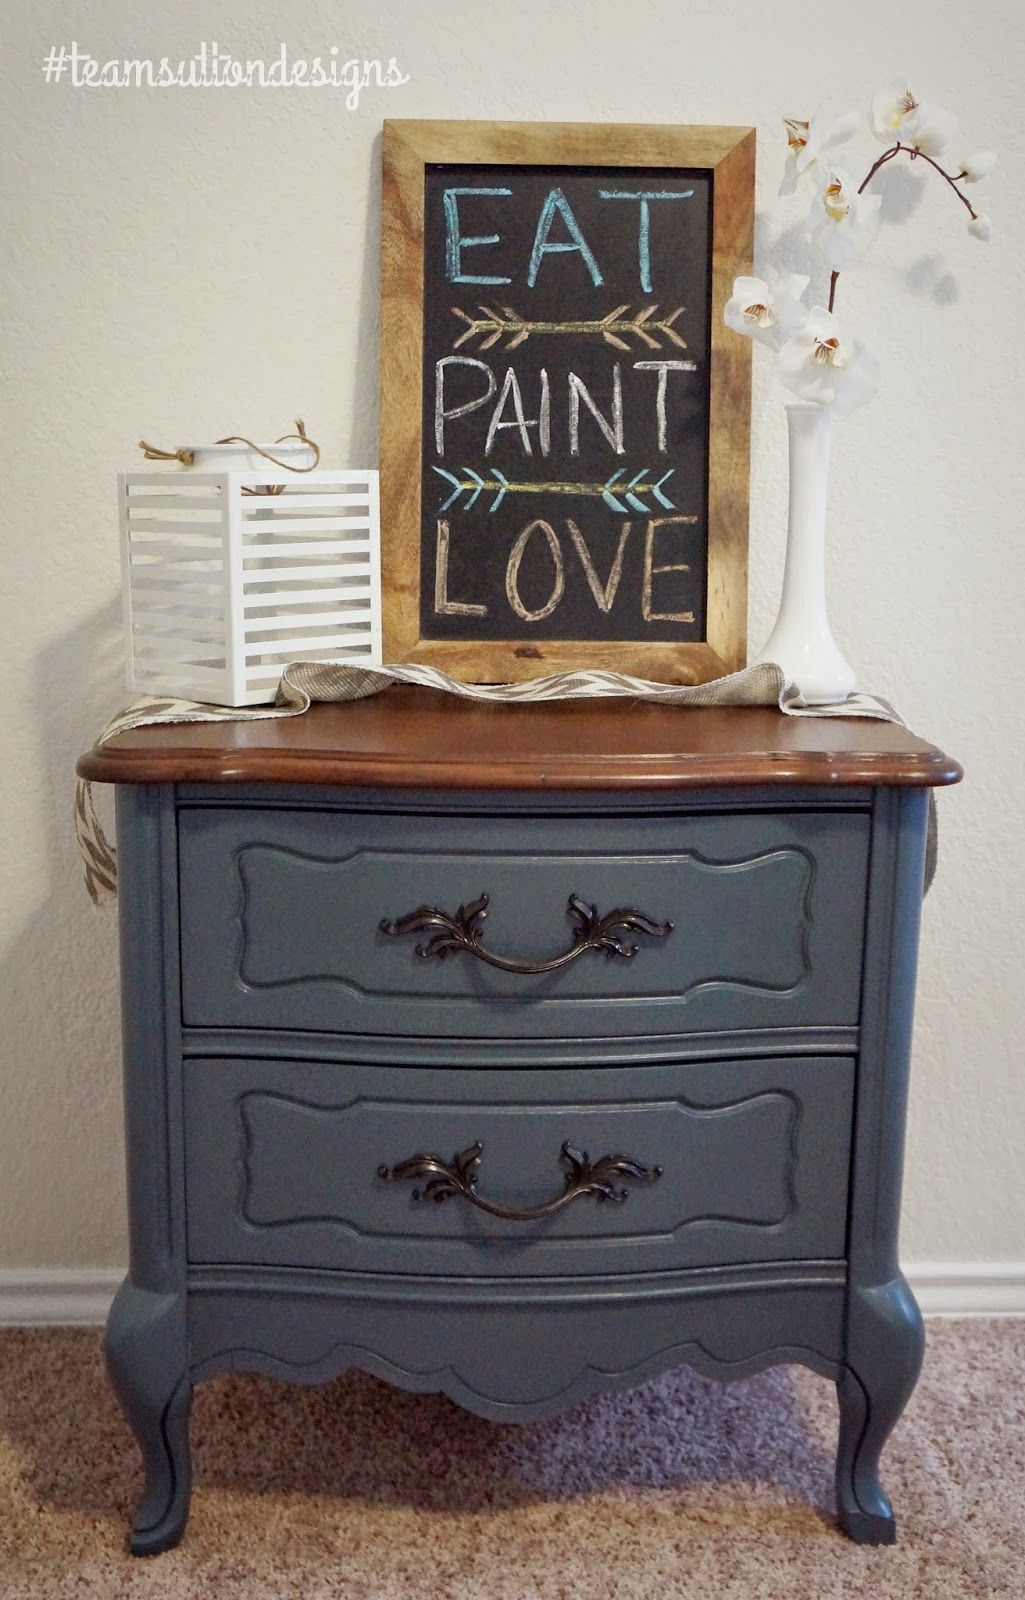 Blue Slate Nightstand Team Sutton Designs The Fat